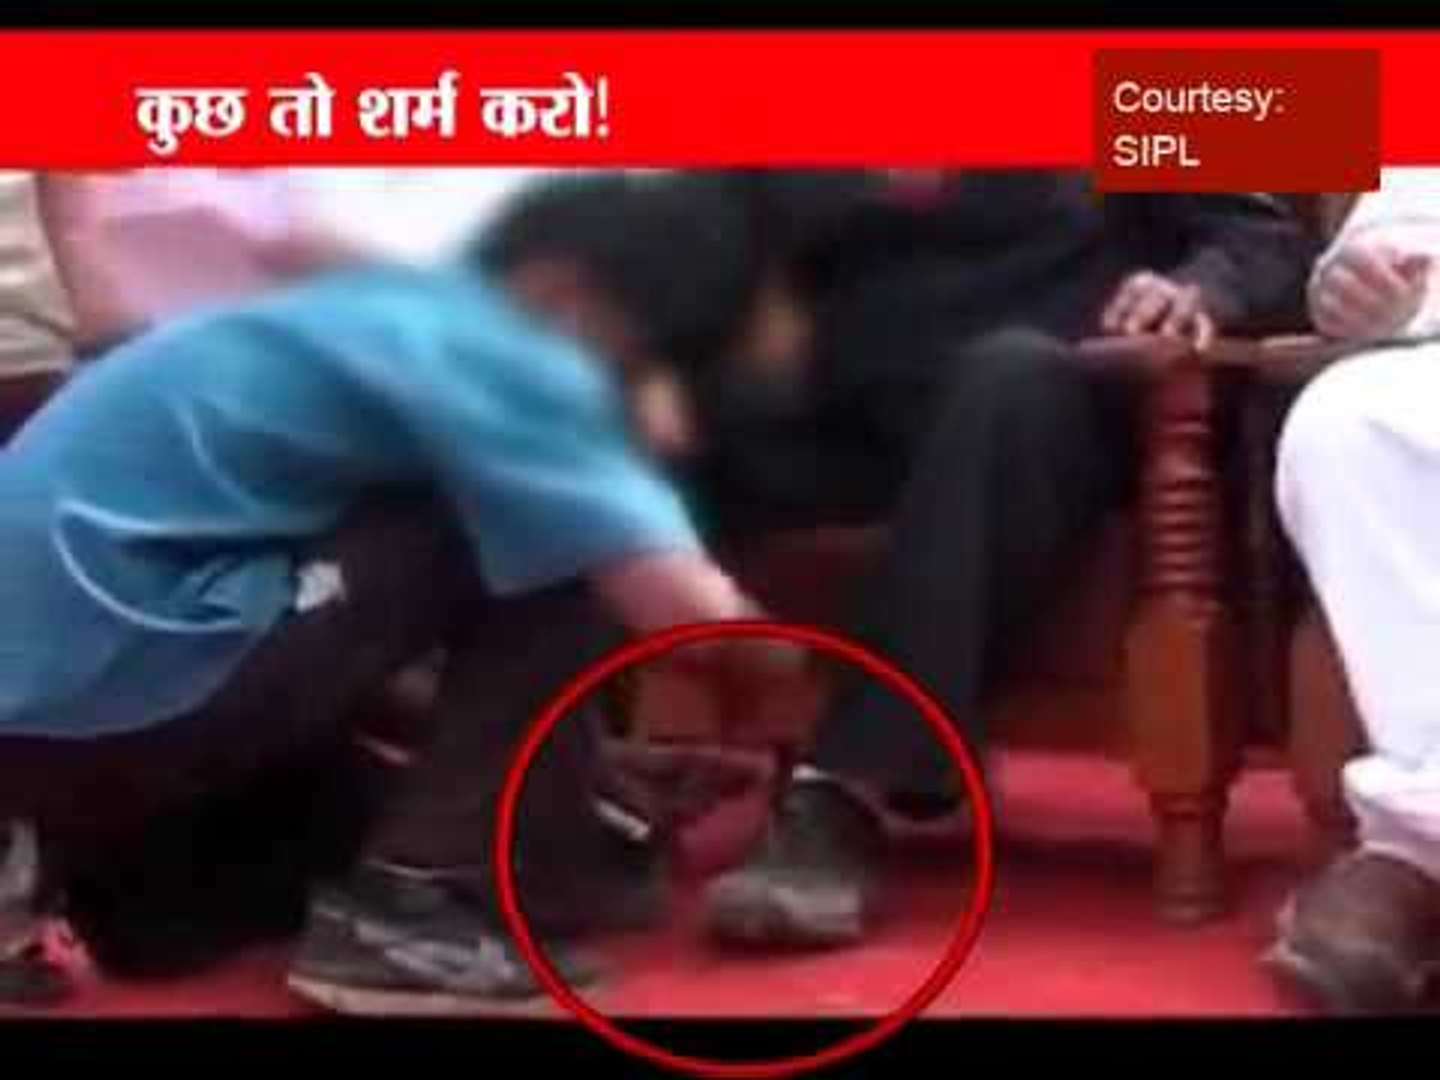 Anger over child tying shoe laces of MP minister Bhopal